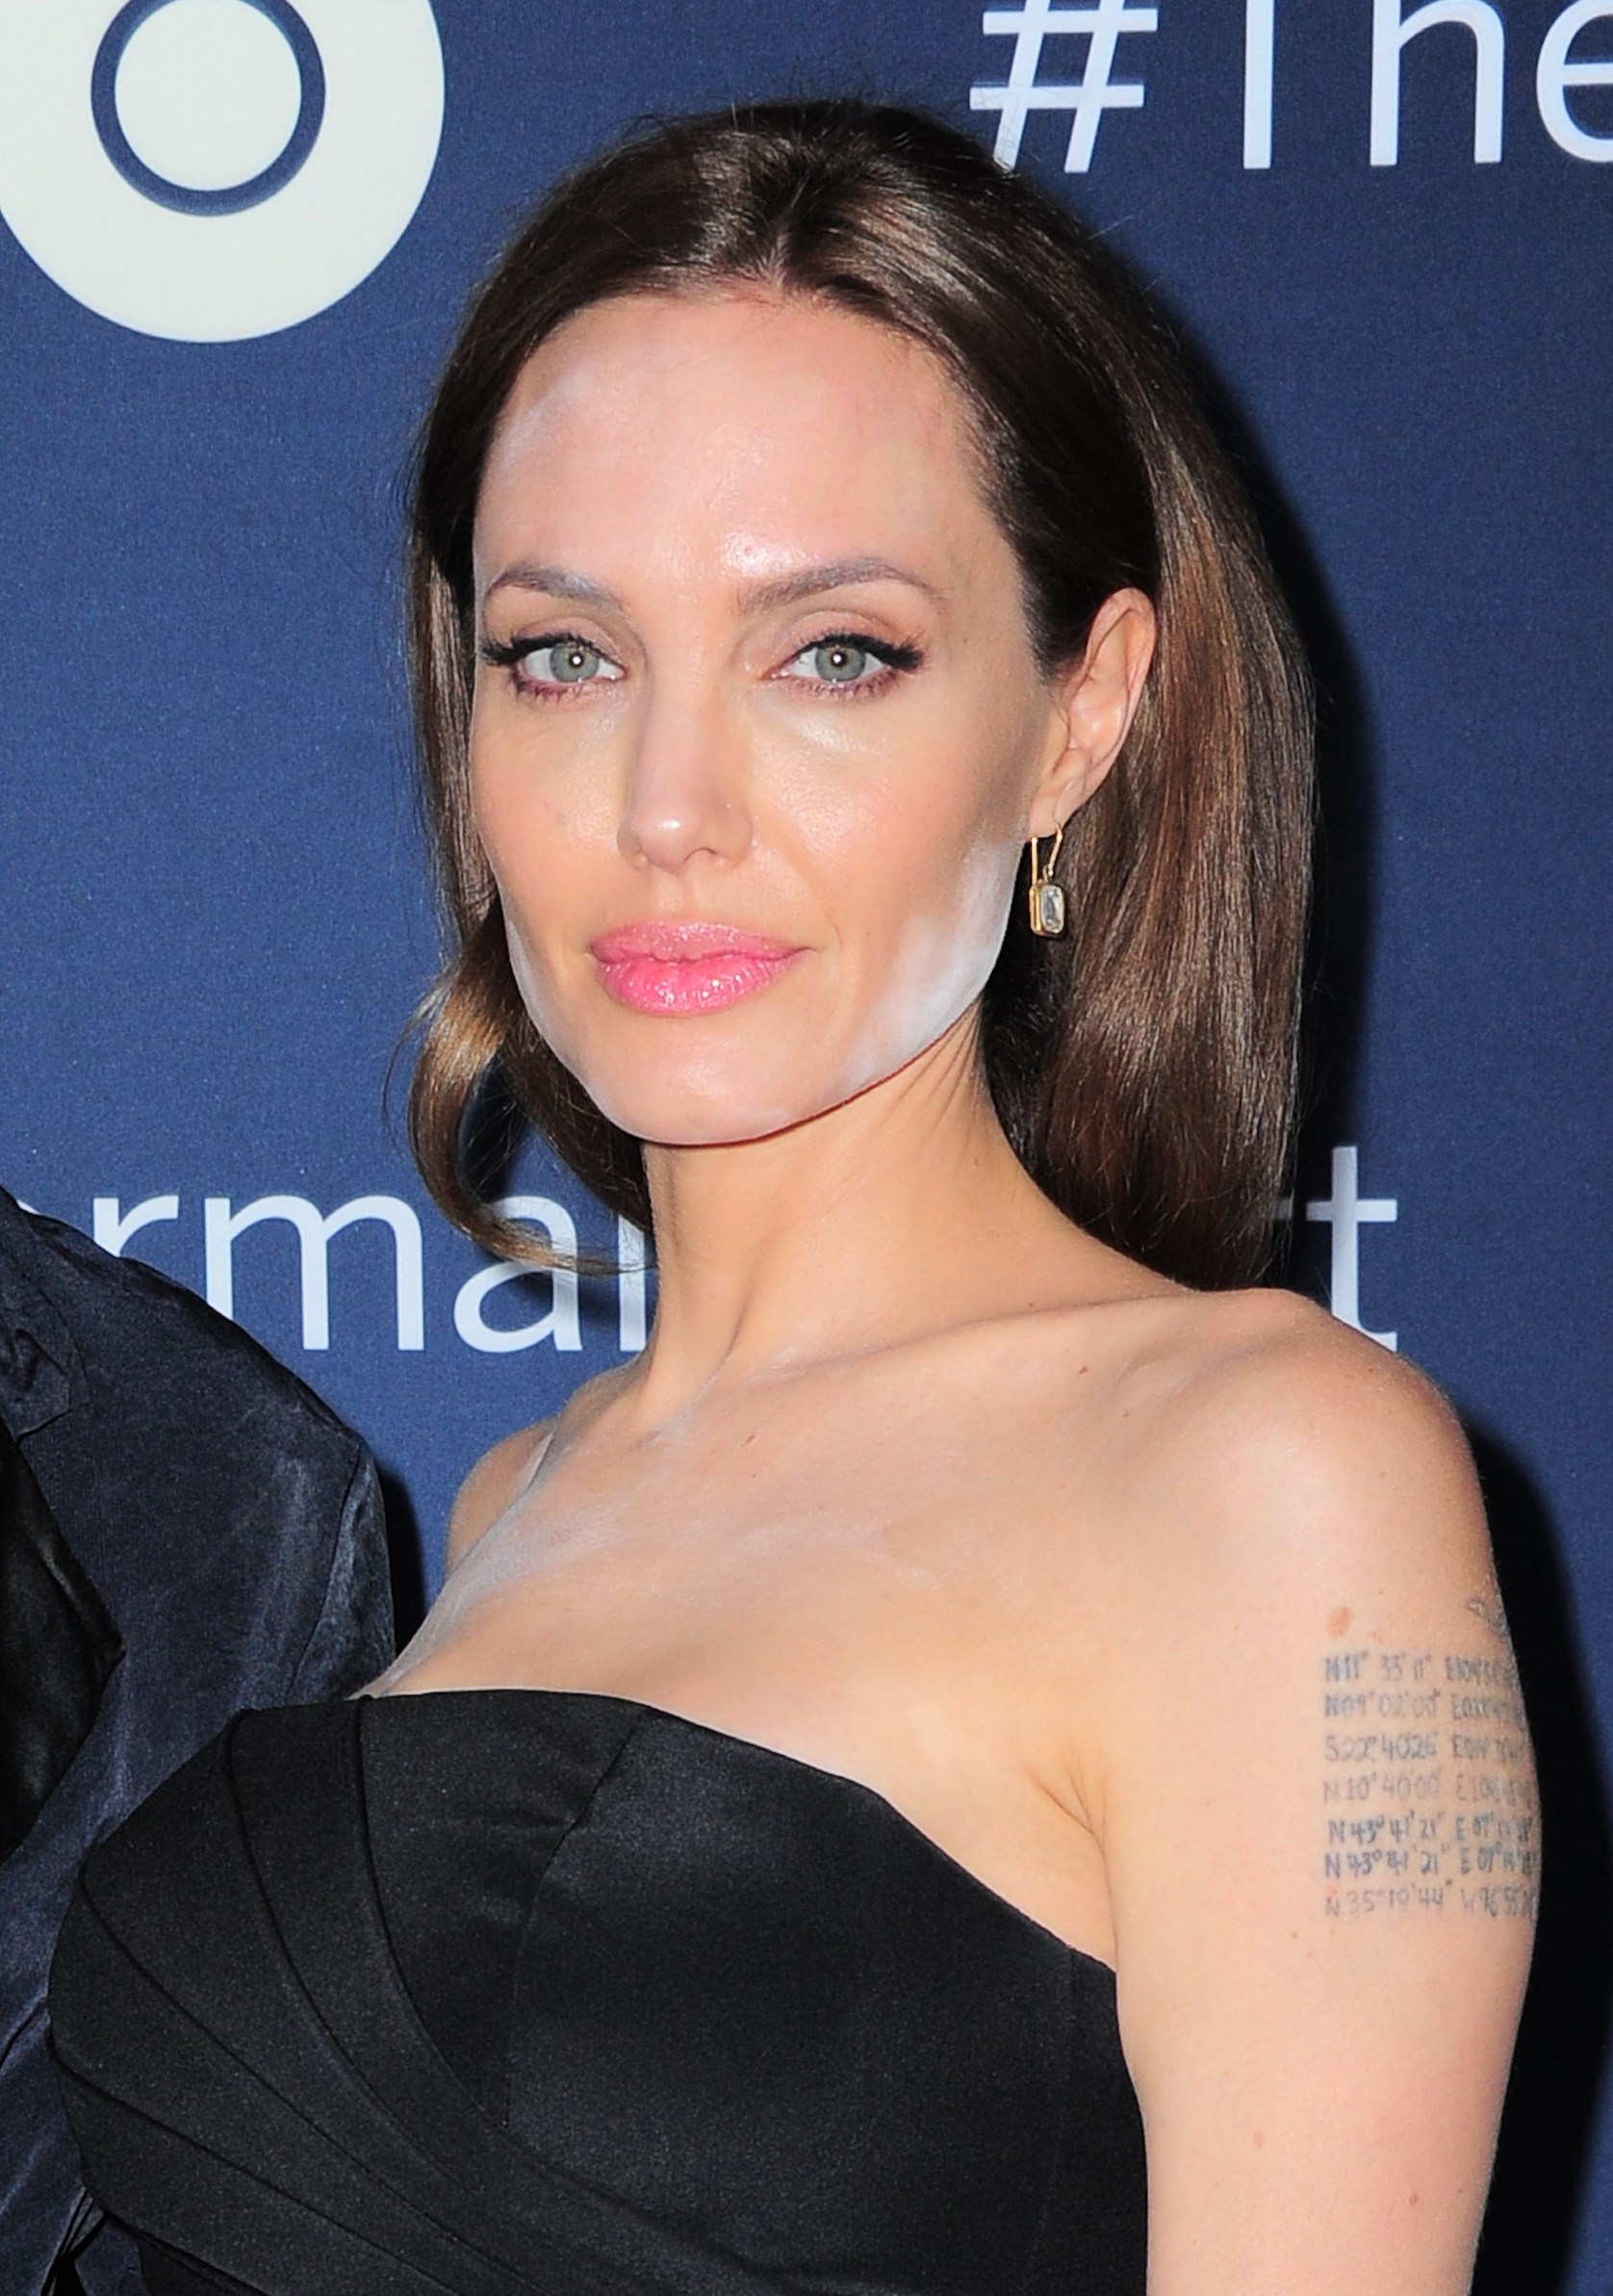 Angelina Jolie at arrivals for THE NORMAL HEART Premiere on HBO, Ziegfeld Theatre, New York, NY May 12, 2014., Image: 193454671, License: Rights-managed, Restrictions: For usage credit please use; Gregorio T. Binuya/Everett Collection, Model Release: no, Credit line: Gregorio T. Binuya / Everett / Profimedia